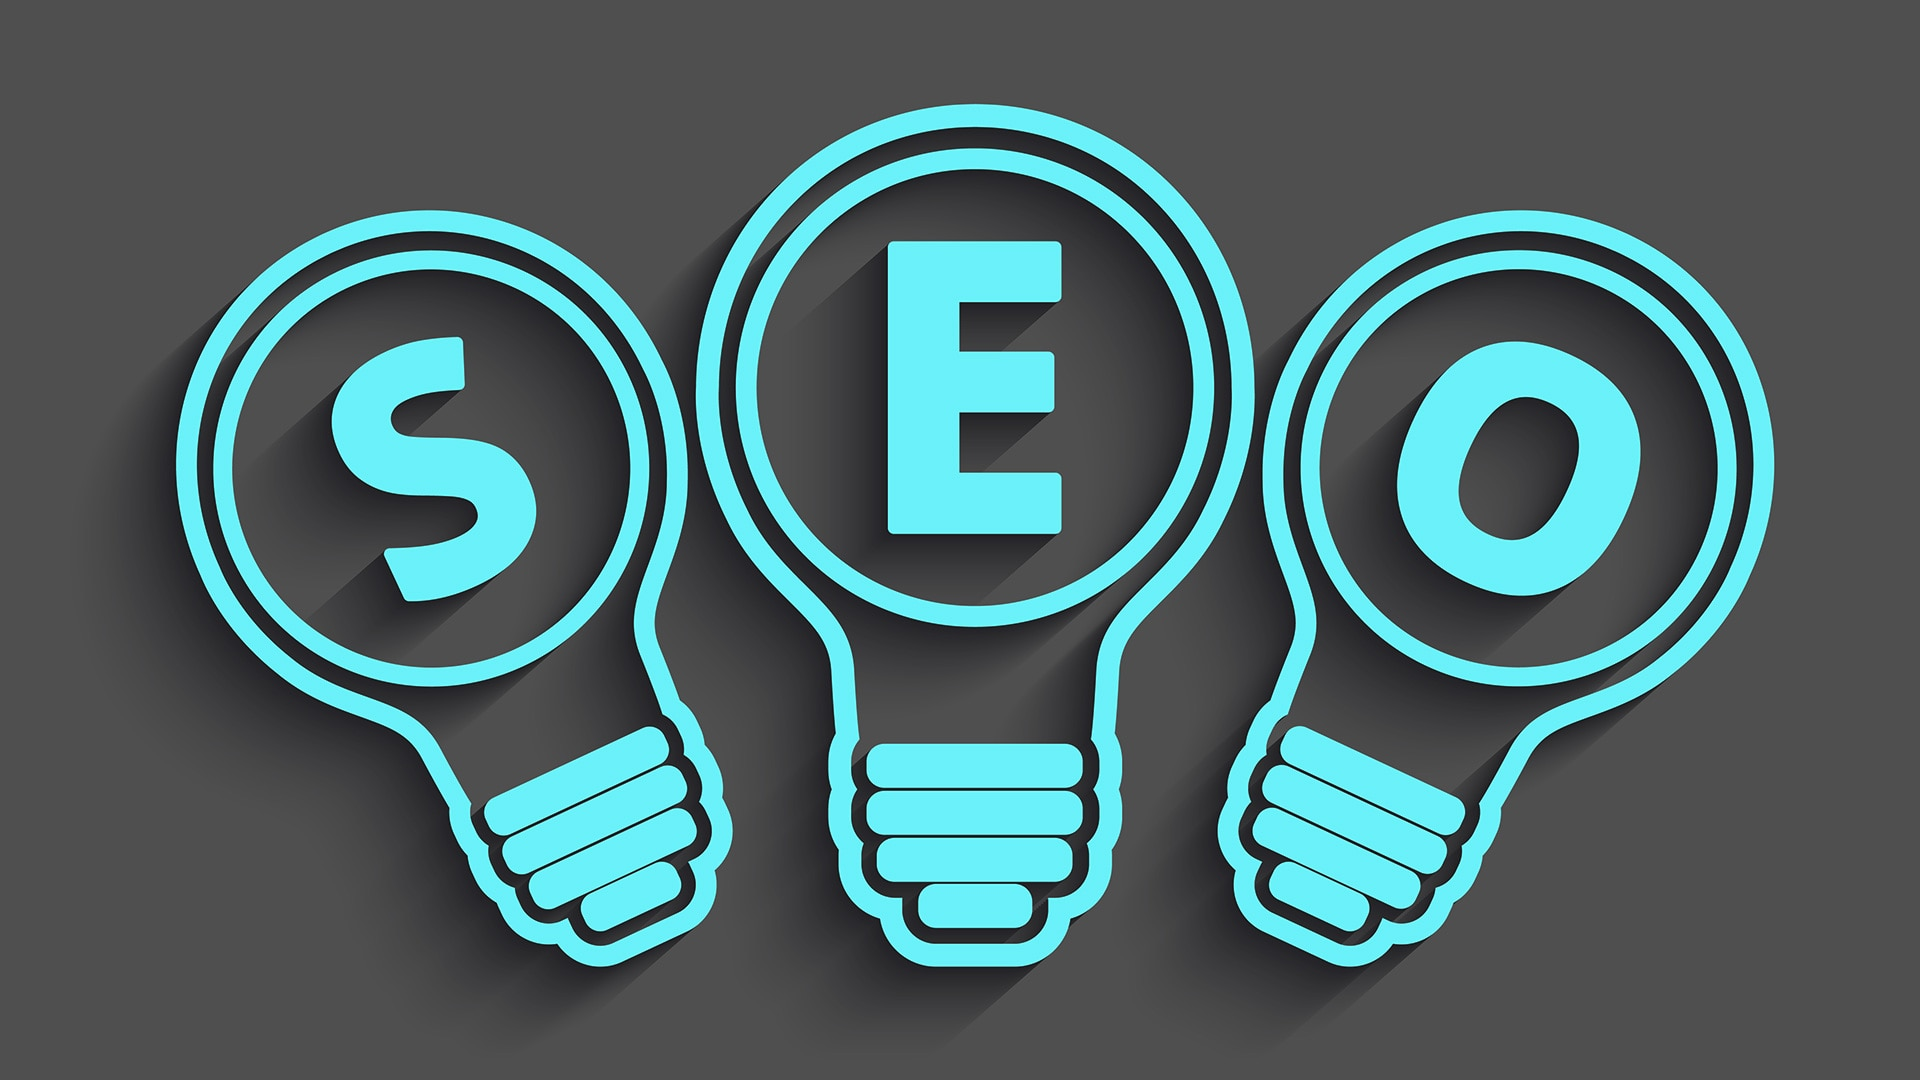 Best SEO expert in BTM Layout. Contact for the best price for SEO services in Bangalore. Organic SEO expert - Website Expert.